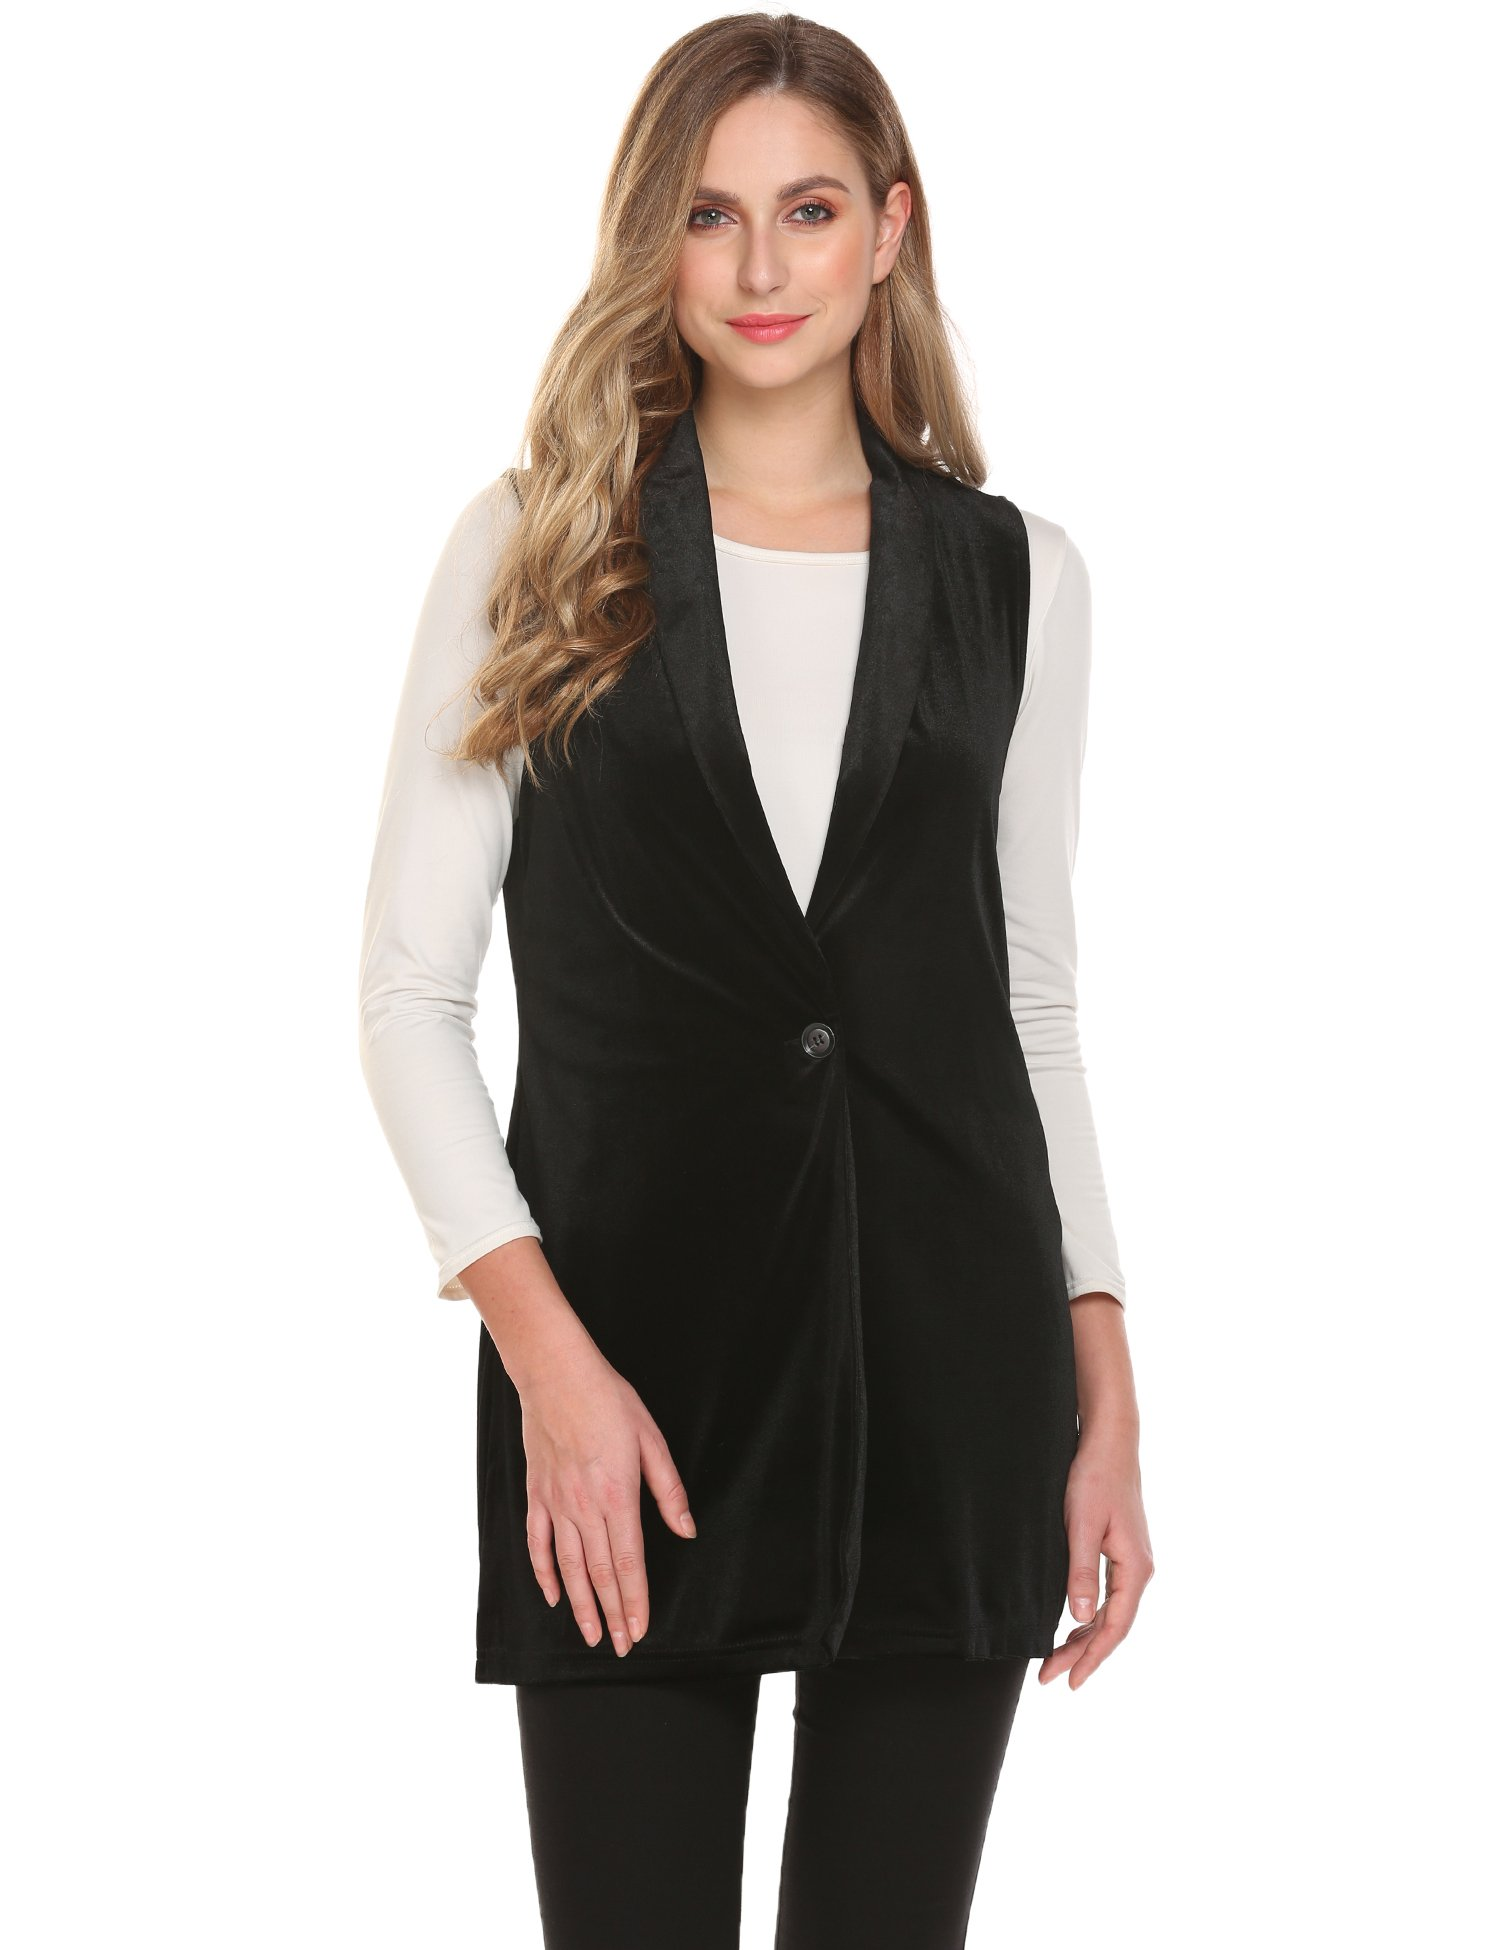 Zeagoo Long Duster Blazer Women's British Style Sleeveless Trench Vest Cardigan Pluse Size Black